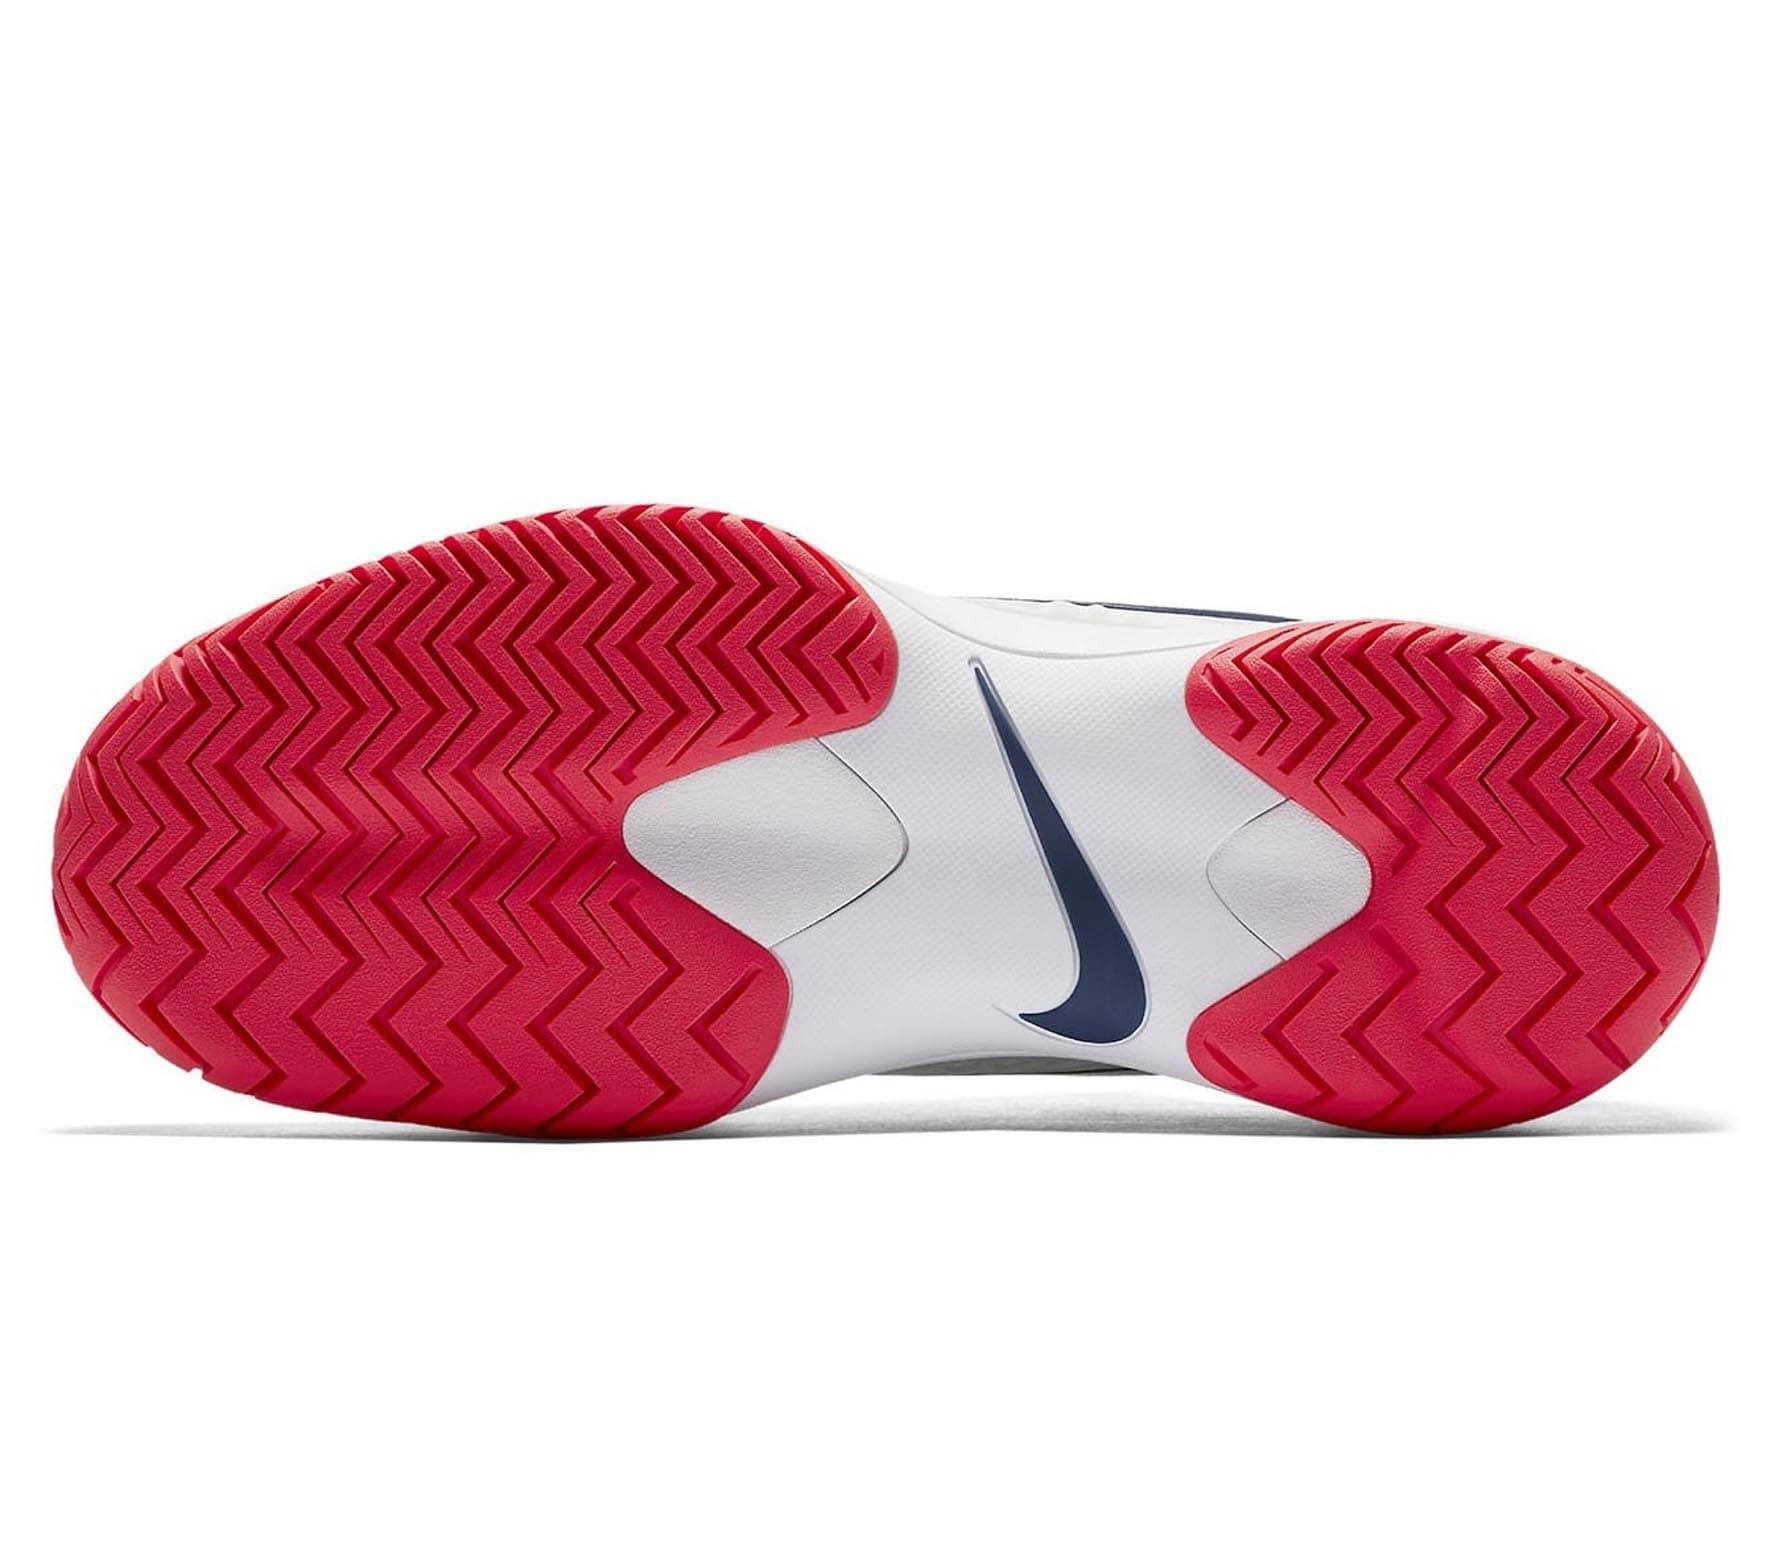 reputable site 3d3a1 df6b9 Nike - Zoom Cage 3 HC Mujer Zapato de tenis (blancoazul oscuro)